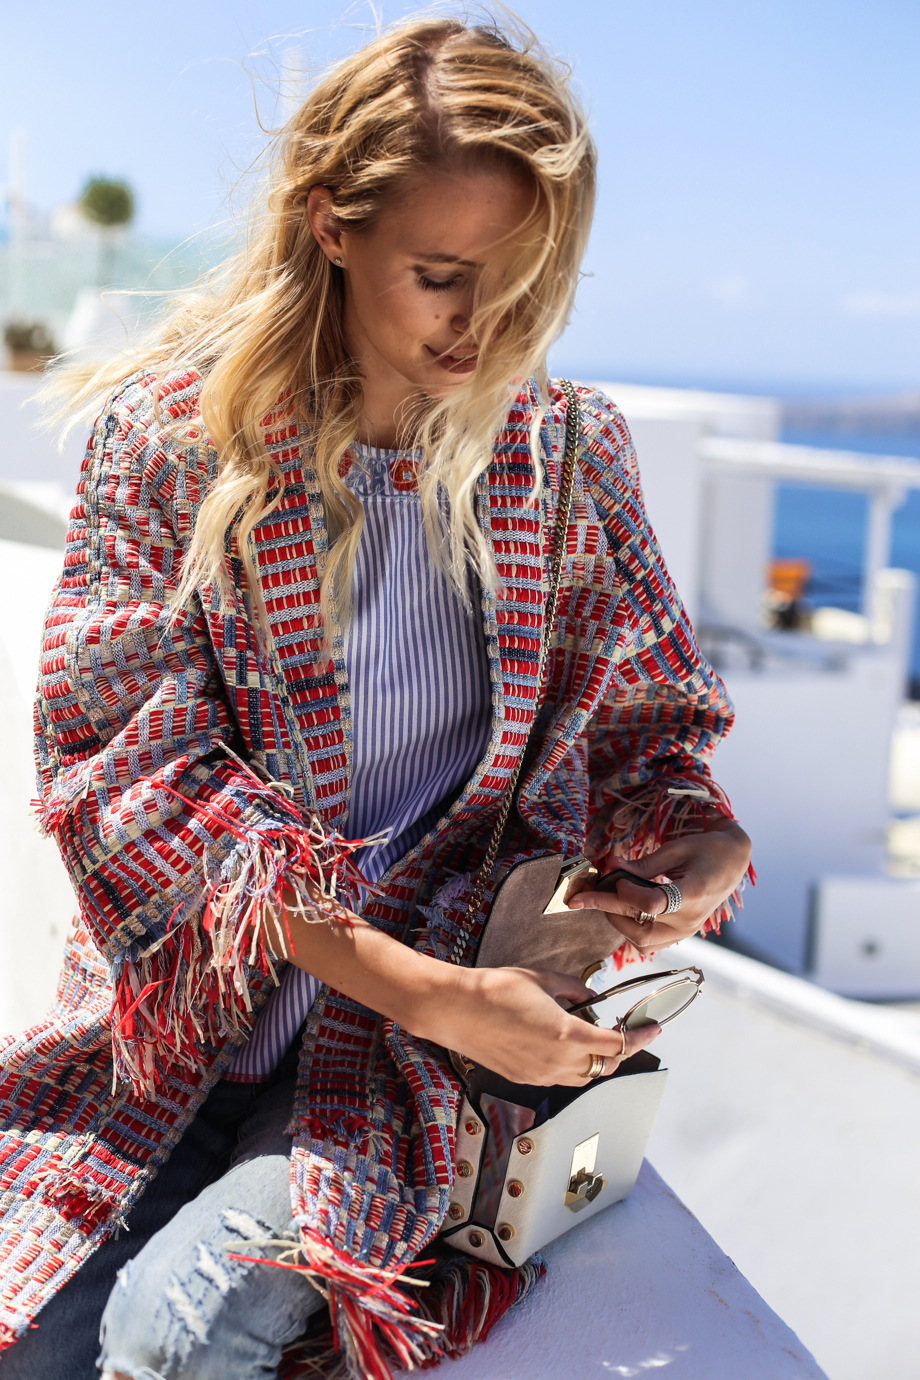 Stripes_Fringes_Levis_ToryBurch_ohhcouture_Santorini16